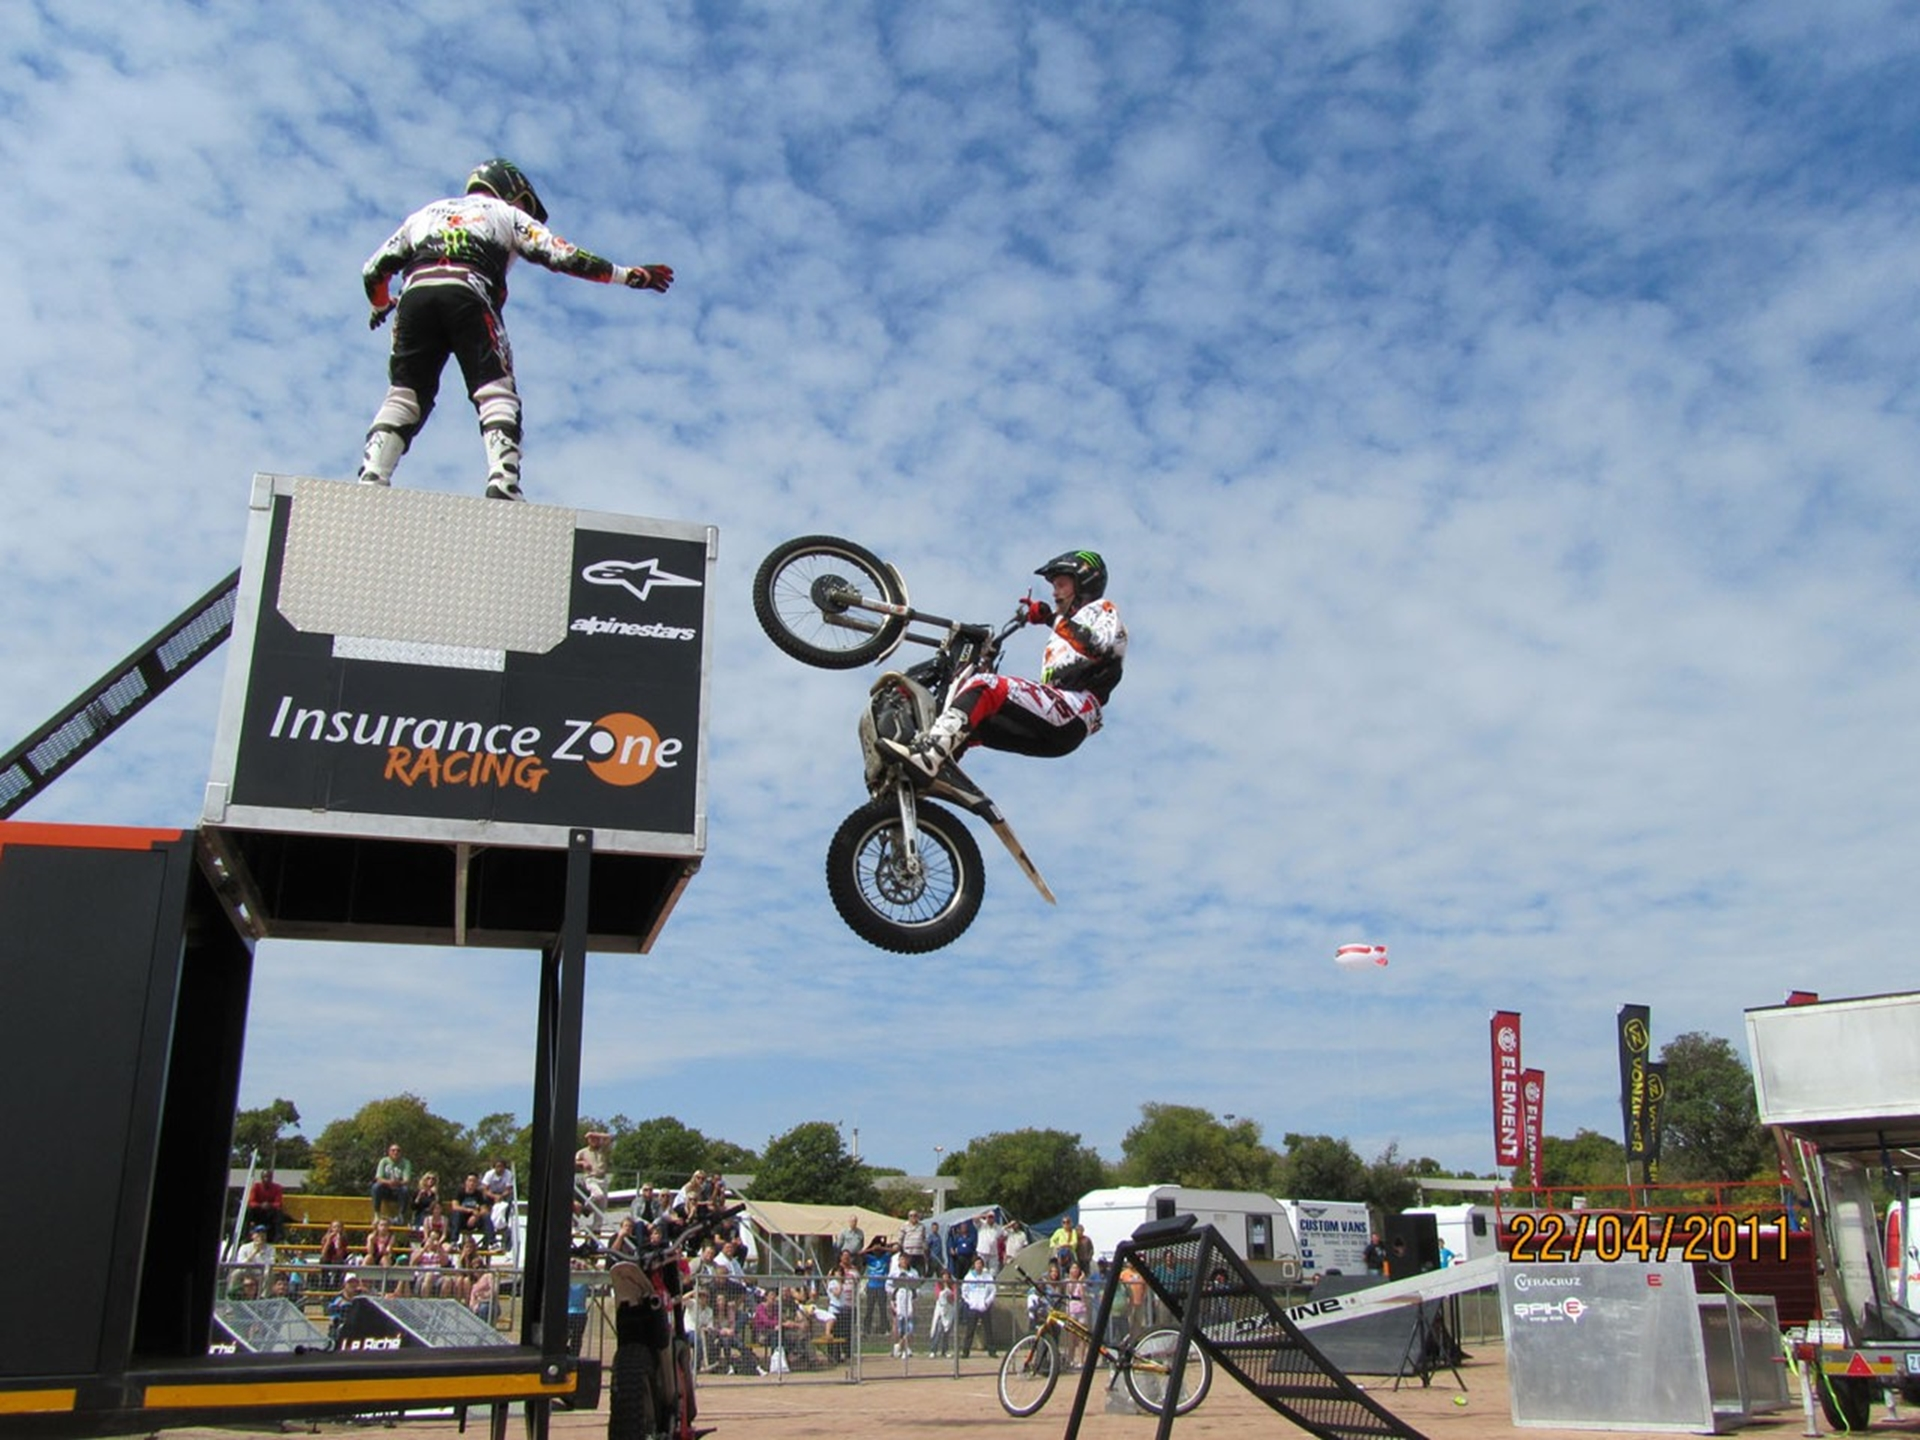 Johannesburg Motorcycle Show 2012